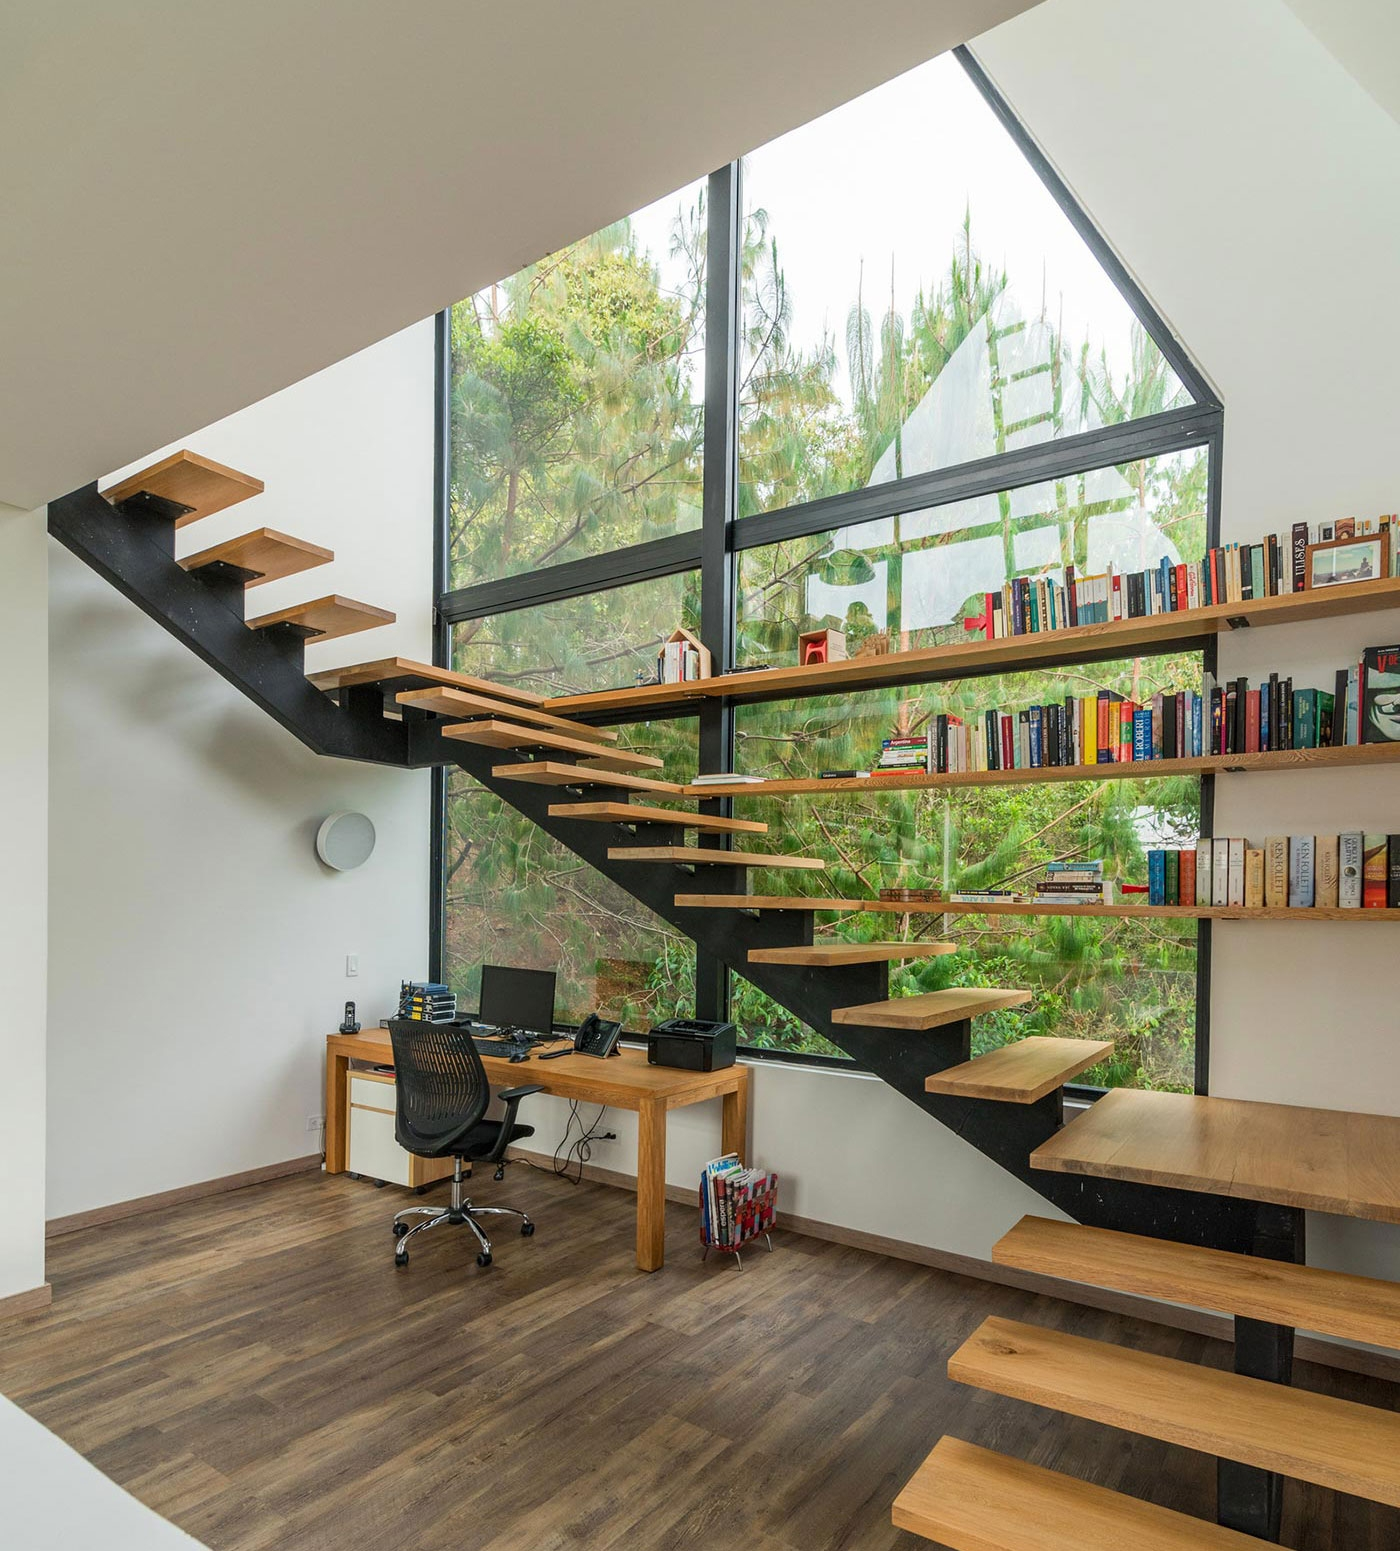 Best Staircase Designs For The Modern Home – Adorable Home | Staircase Designs For Homes | Concrete | Contemporary | Modern | Round | Luxury